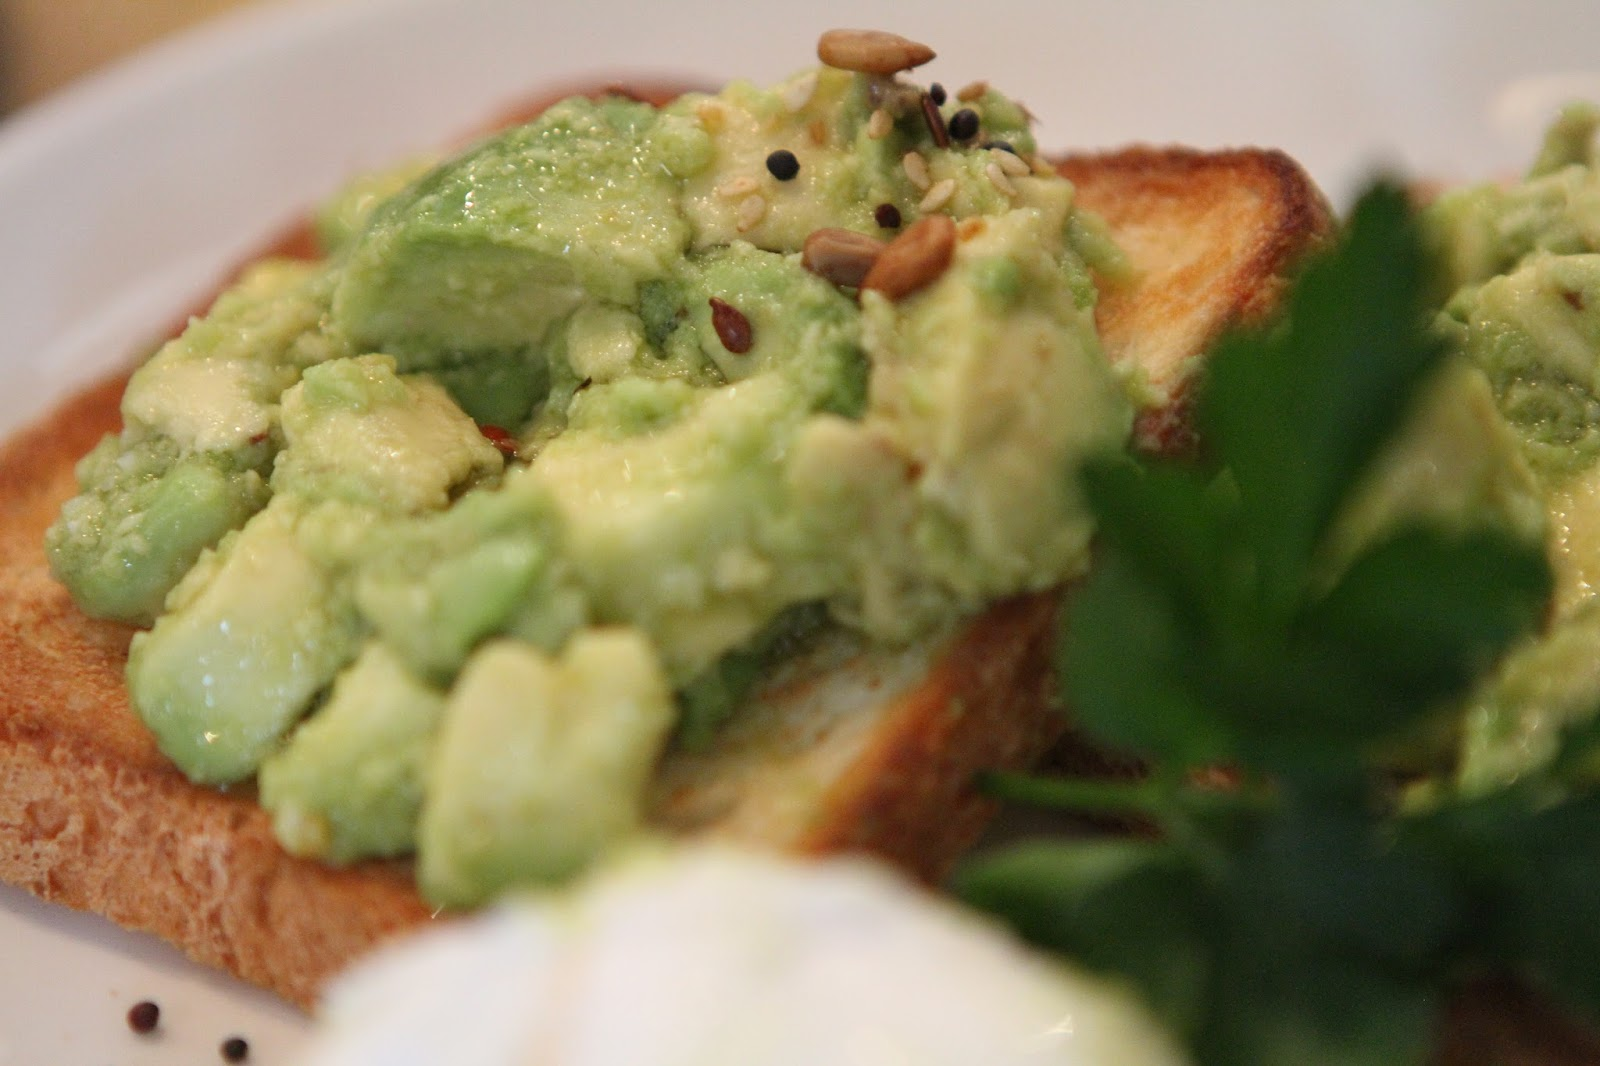 Bills Avocado on toast gluten free